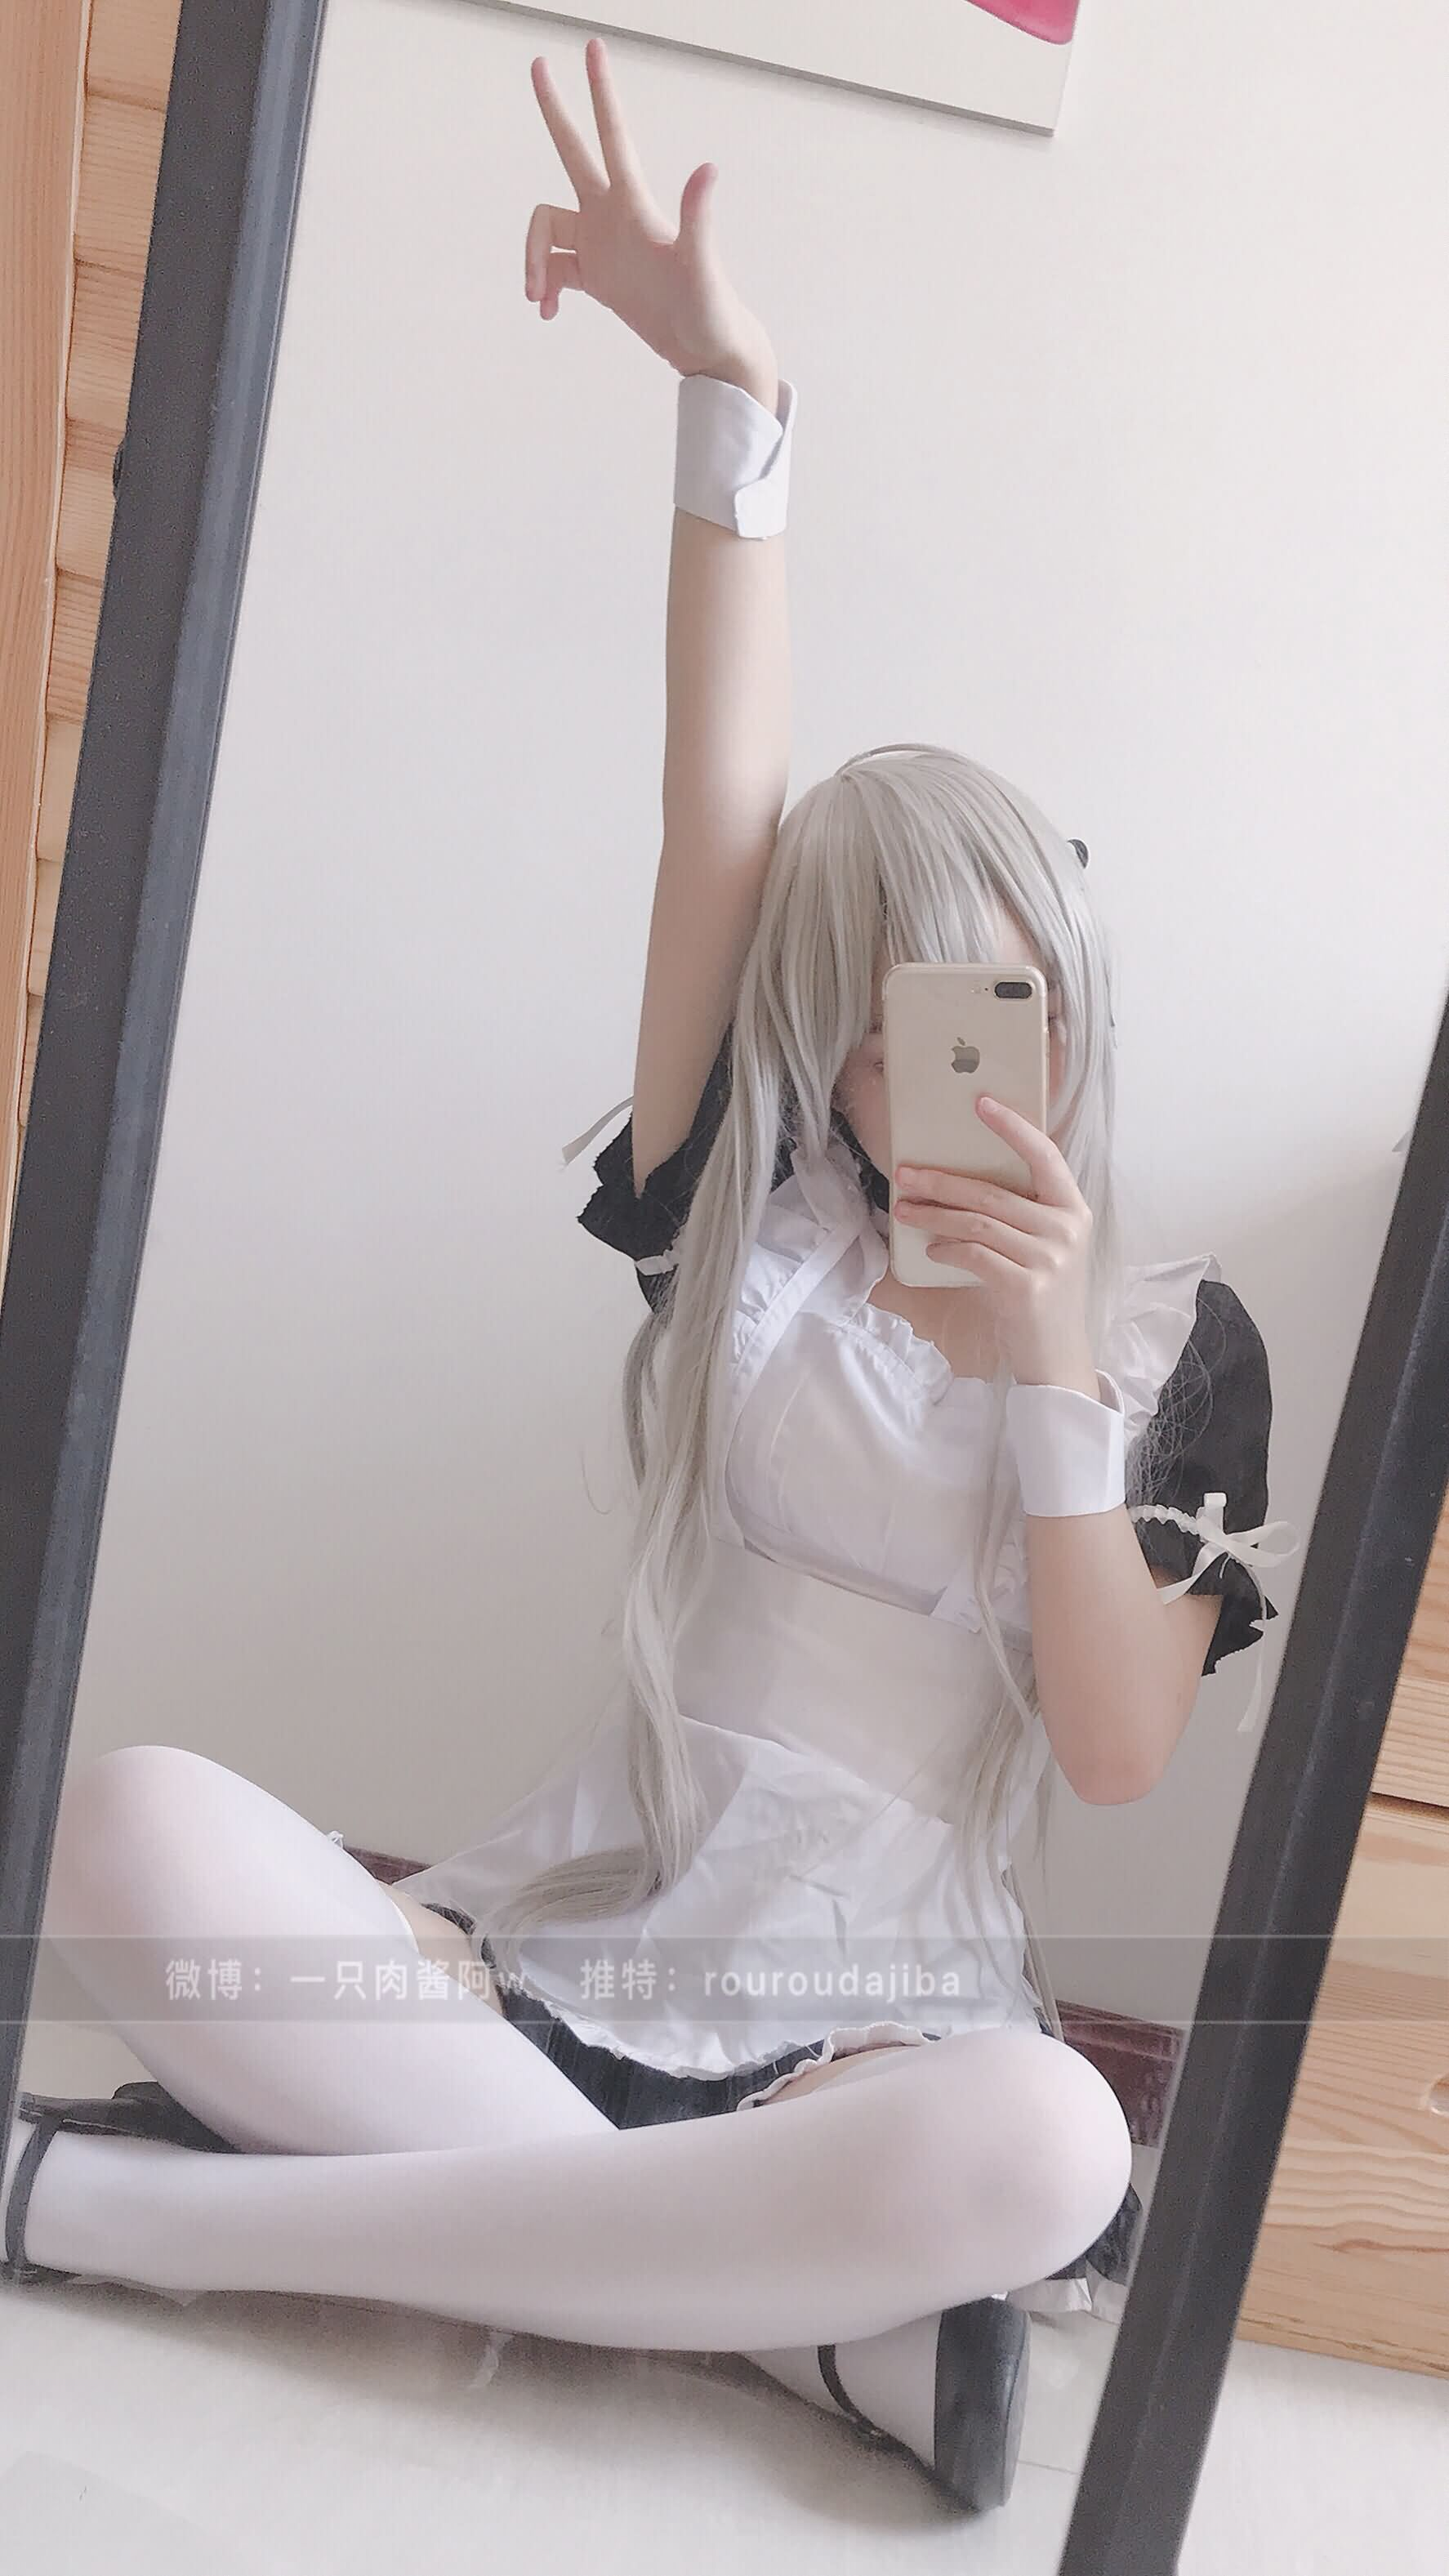 792 - Chinese Coser Cosplay Haruka Sora [一只肉酱阿] 春日野穹 Preview Version